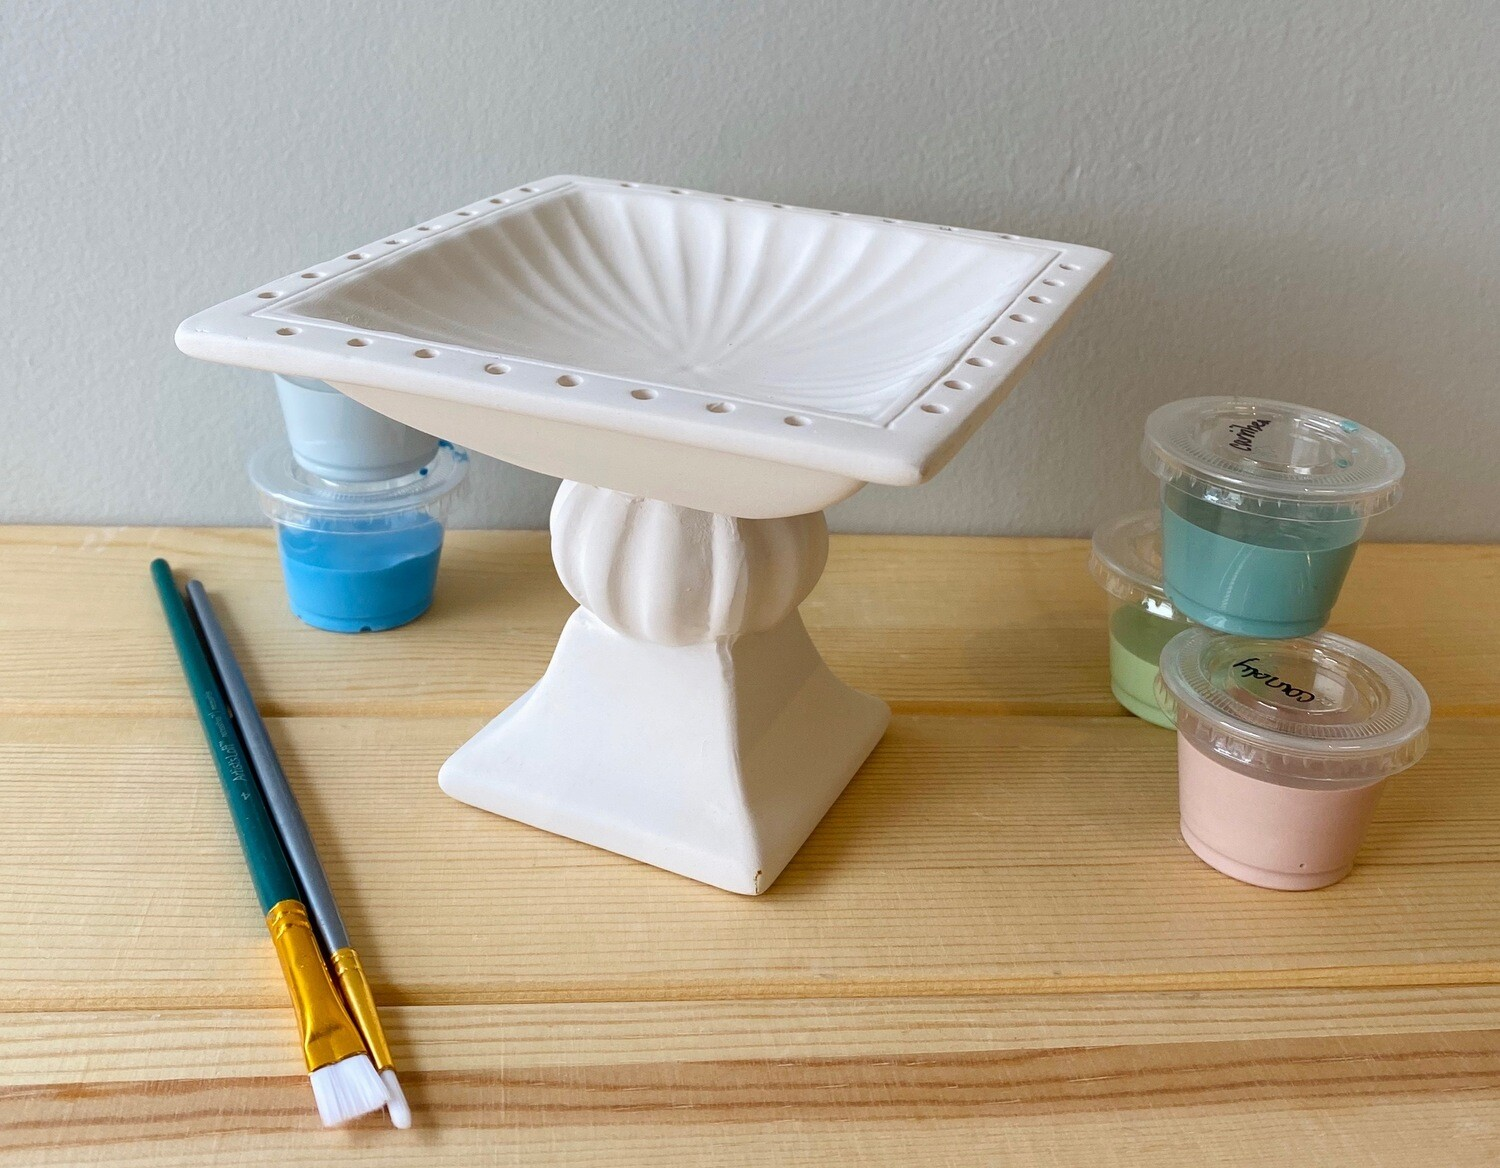 Take Home Decorative Jewelry Holder with Glazes - Pick up Curbside